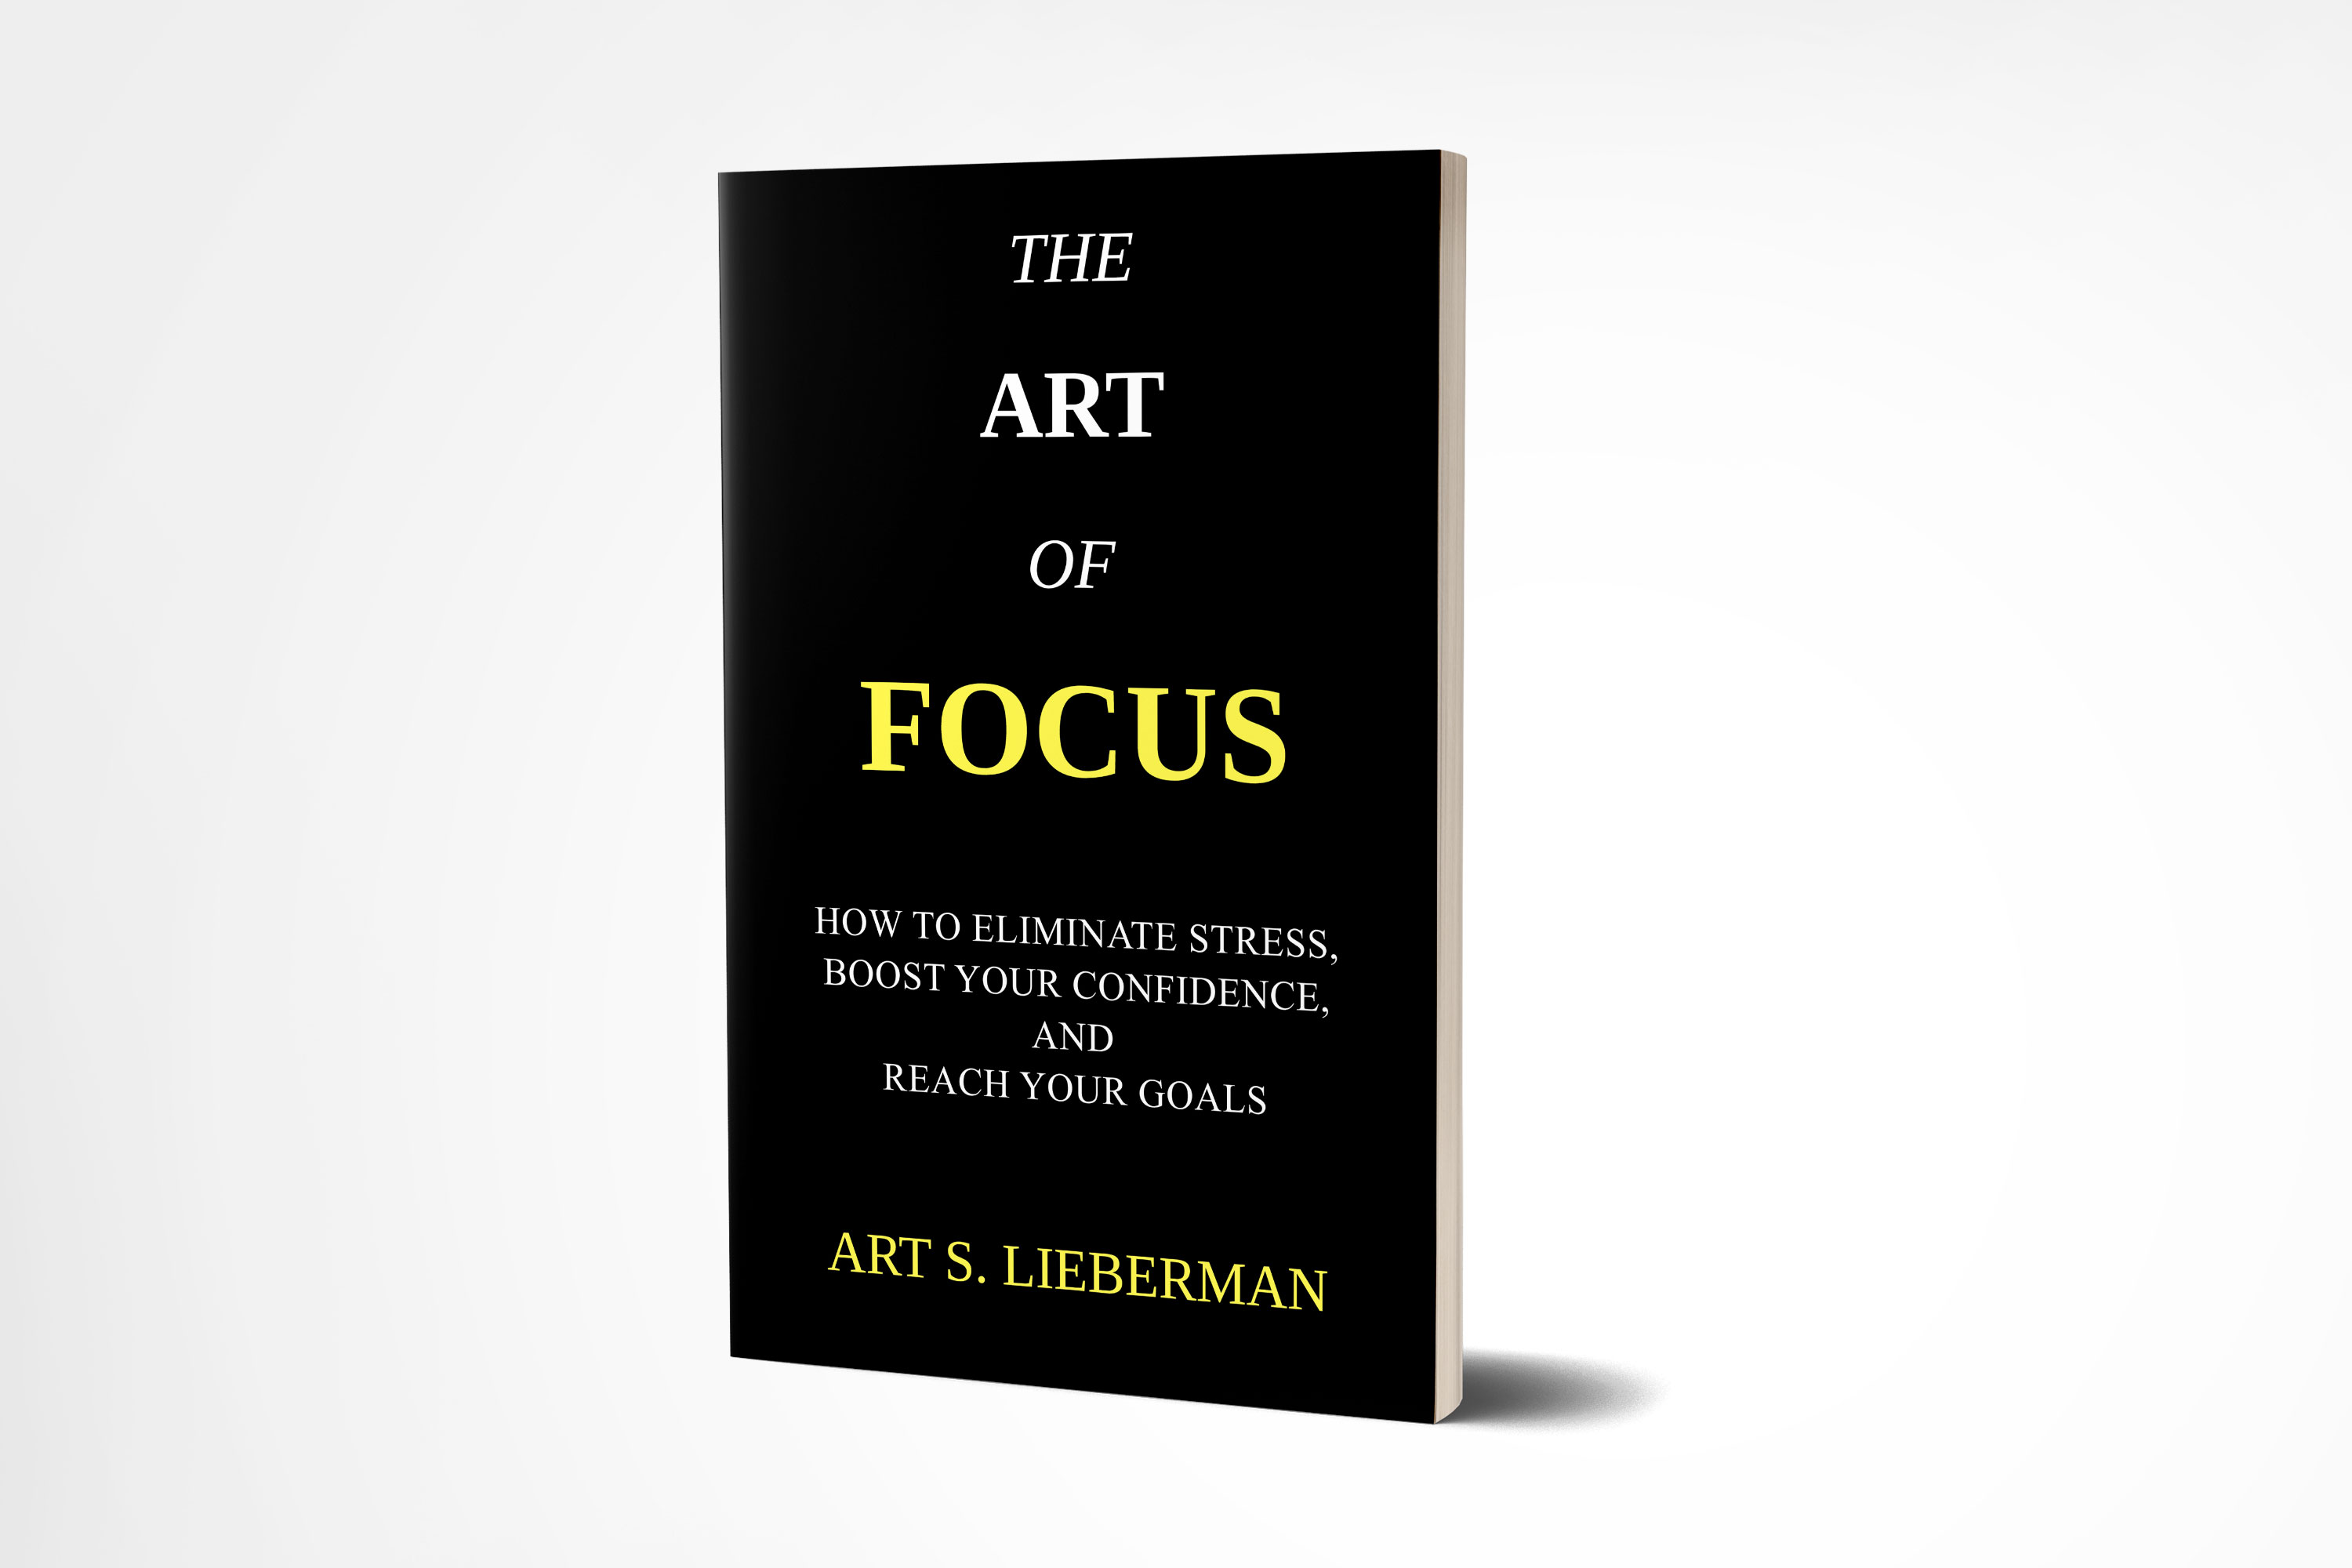 the art of focus